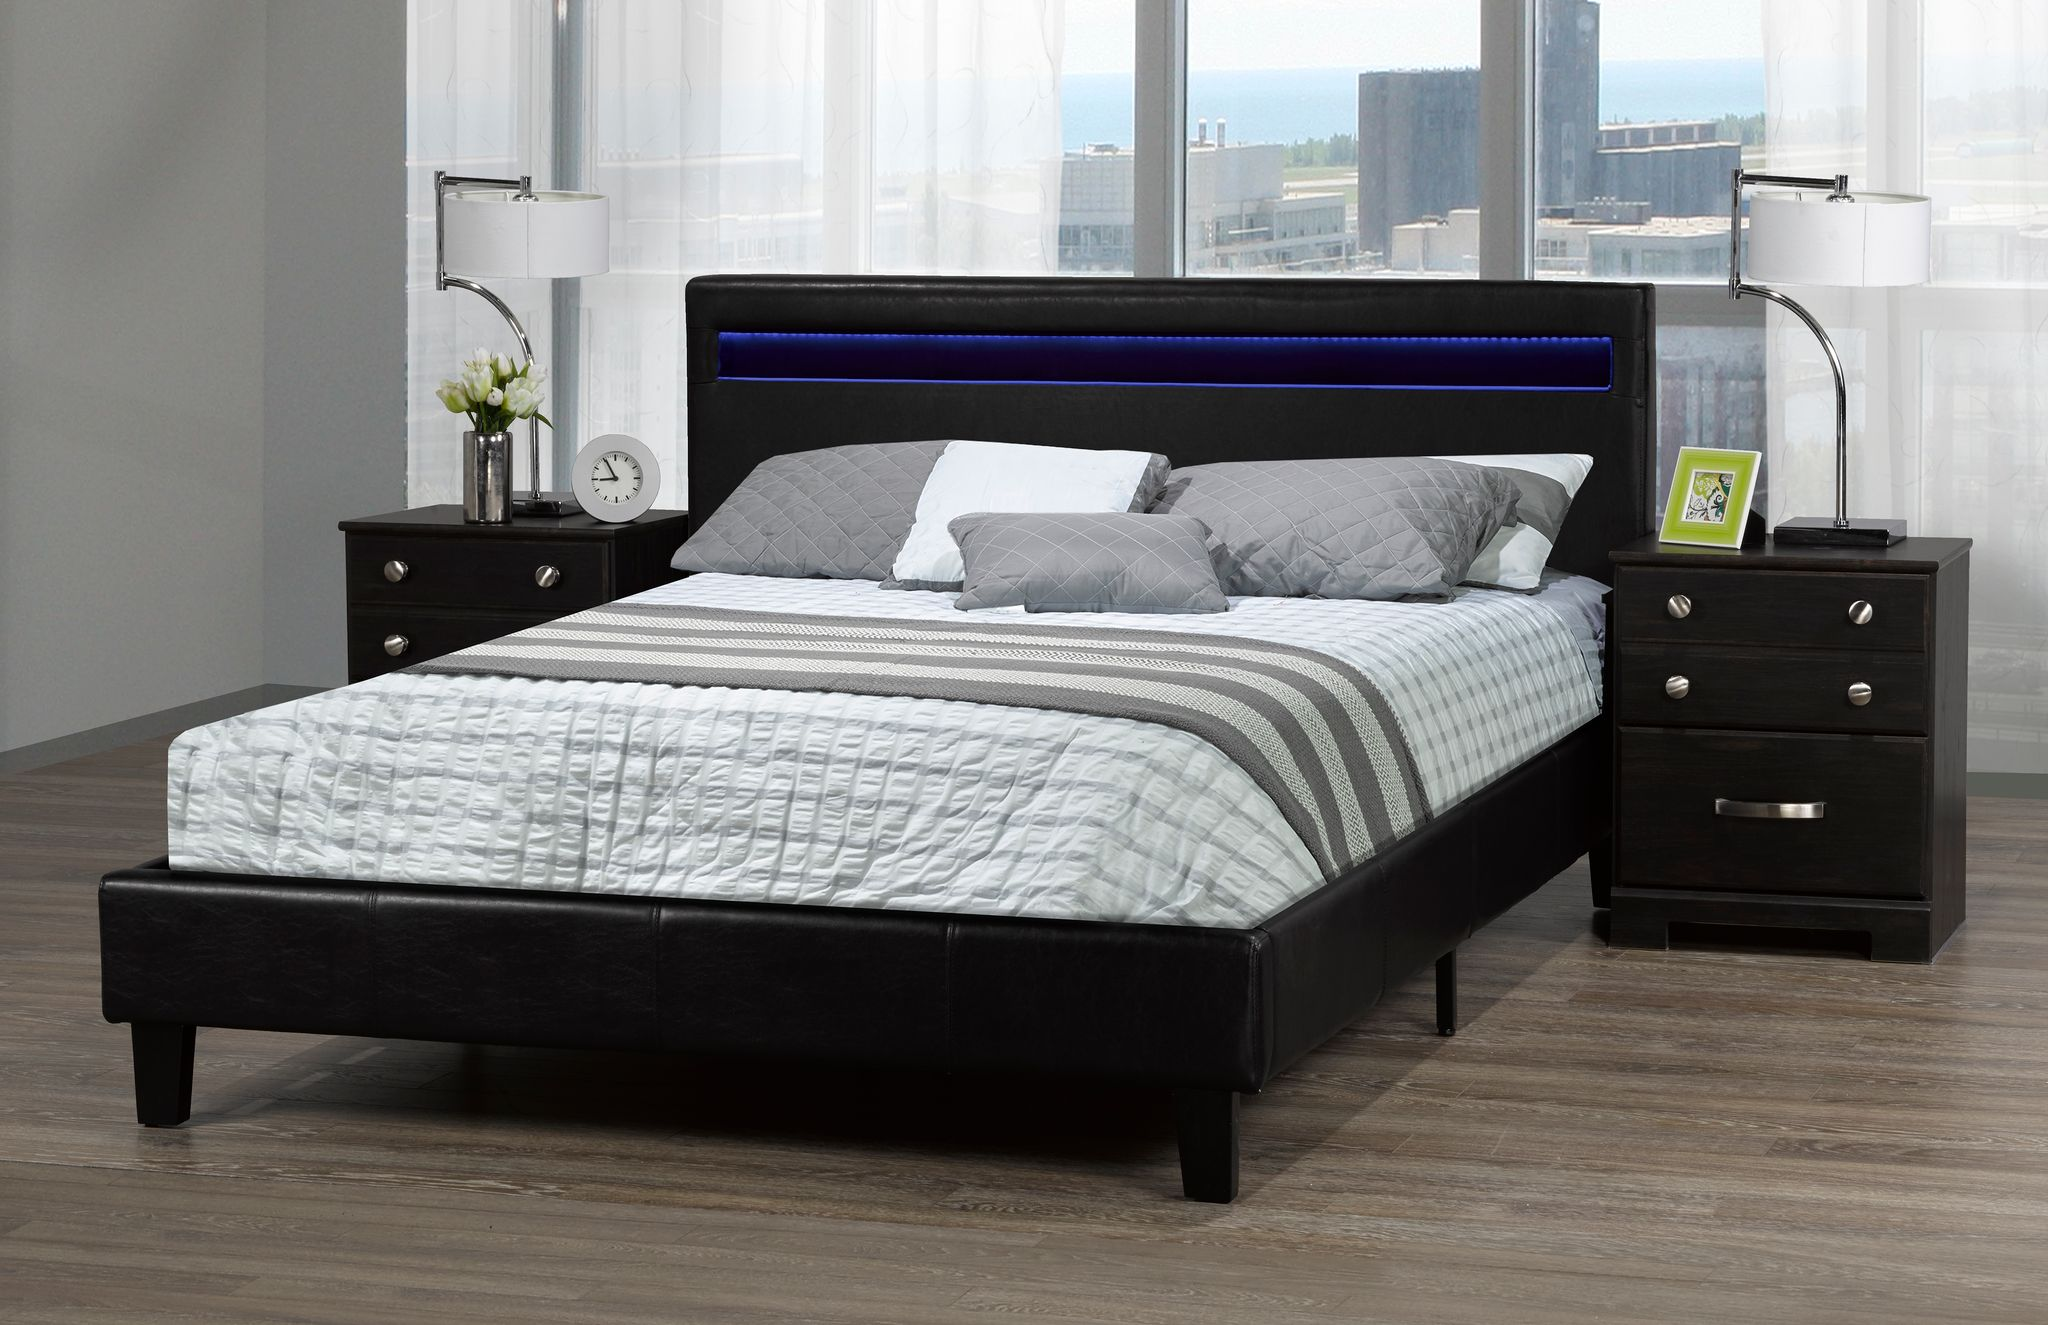 DHARA DOUBLE BED IN A BOX BLACK W/LIGHT